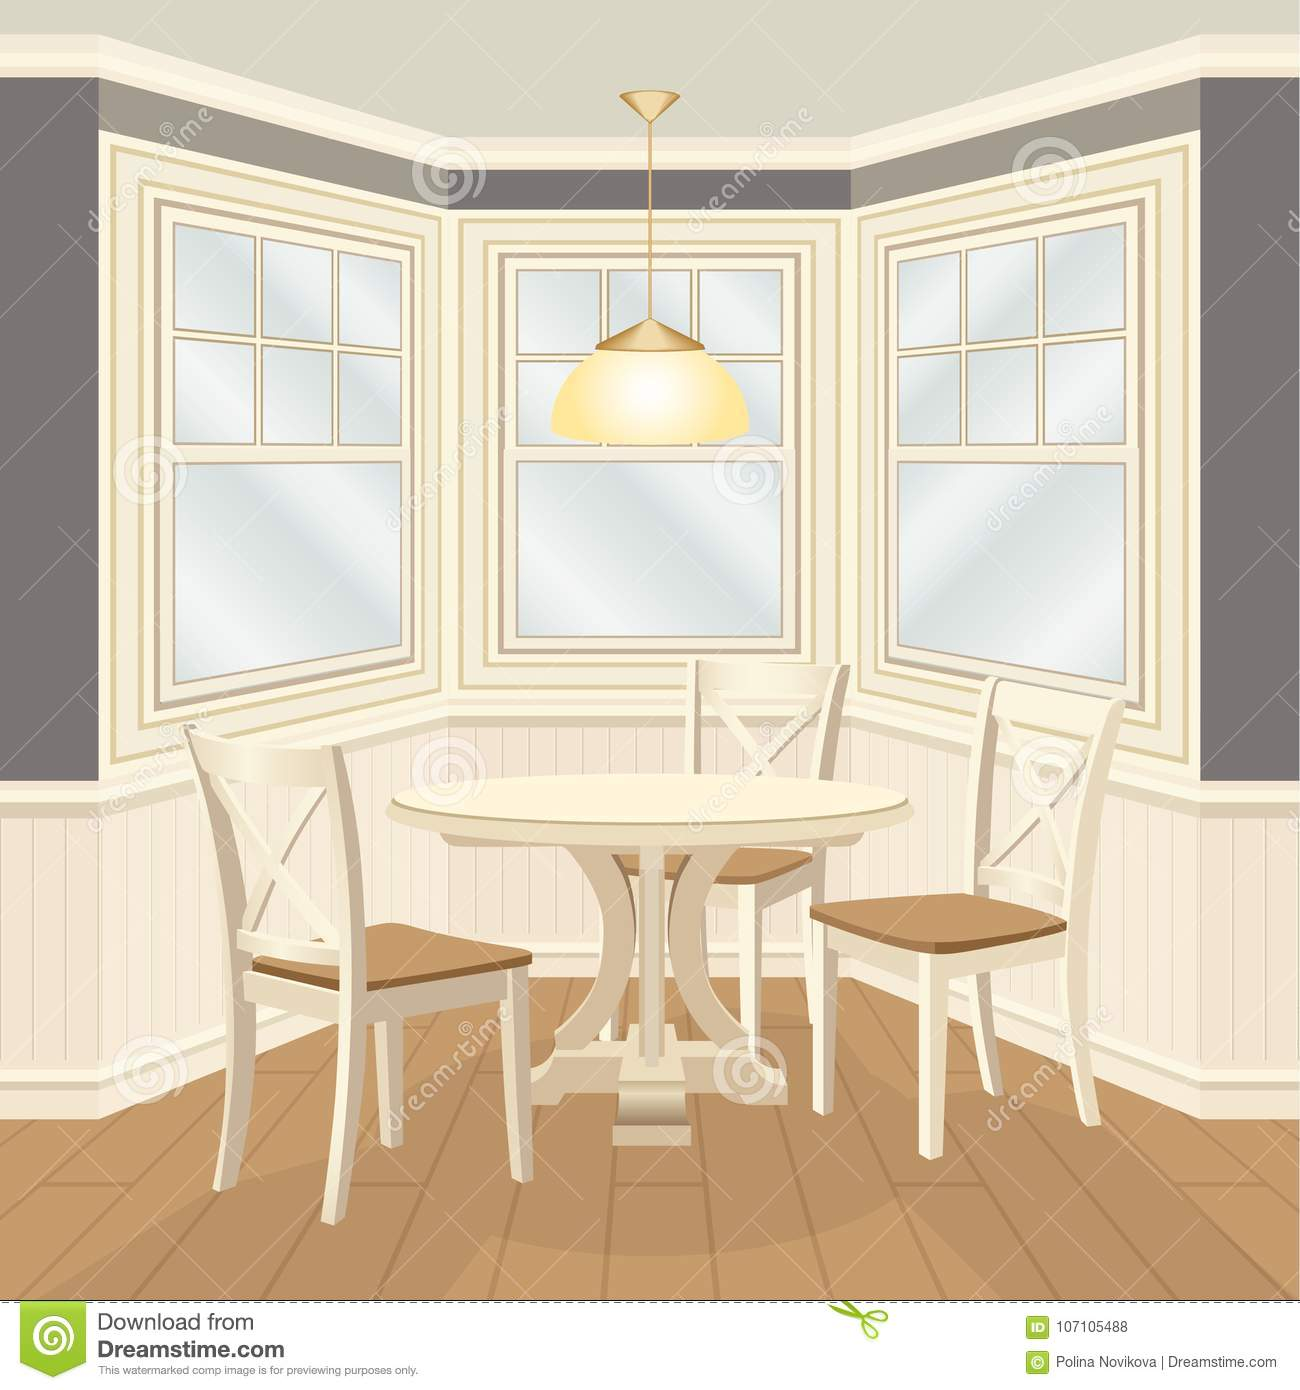 Classic Dinning Room With Round Table And Chairs Bay Window Stock Illustration Illustration Of Cottage Jetty 107105488